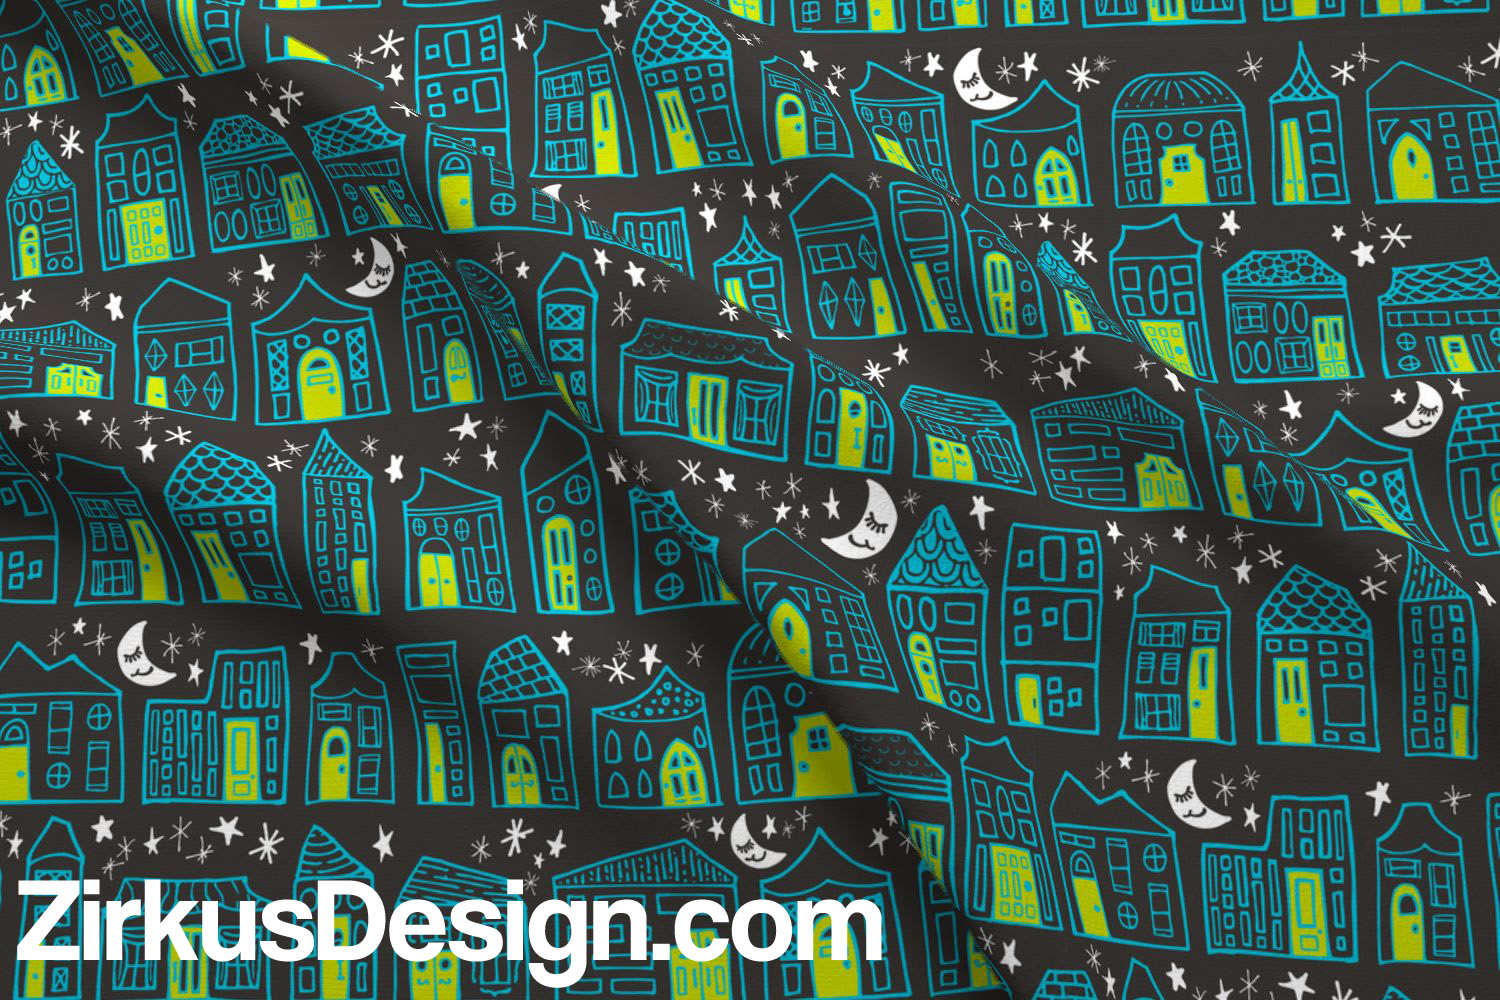 Zirkus Design | Happy City Pattern Collection - Welcome Home! - in Lime, Turquoise, and Charcoal